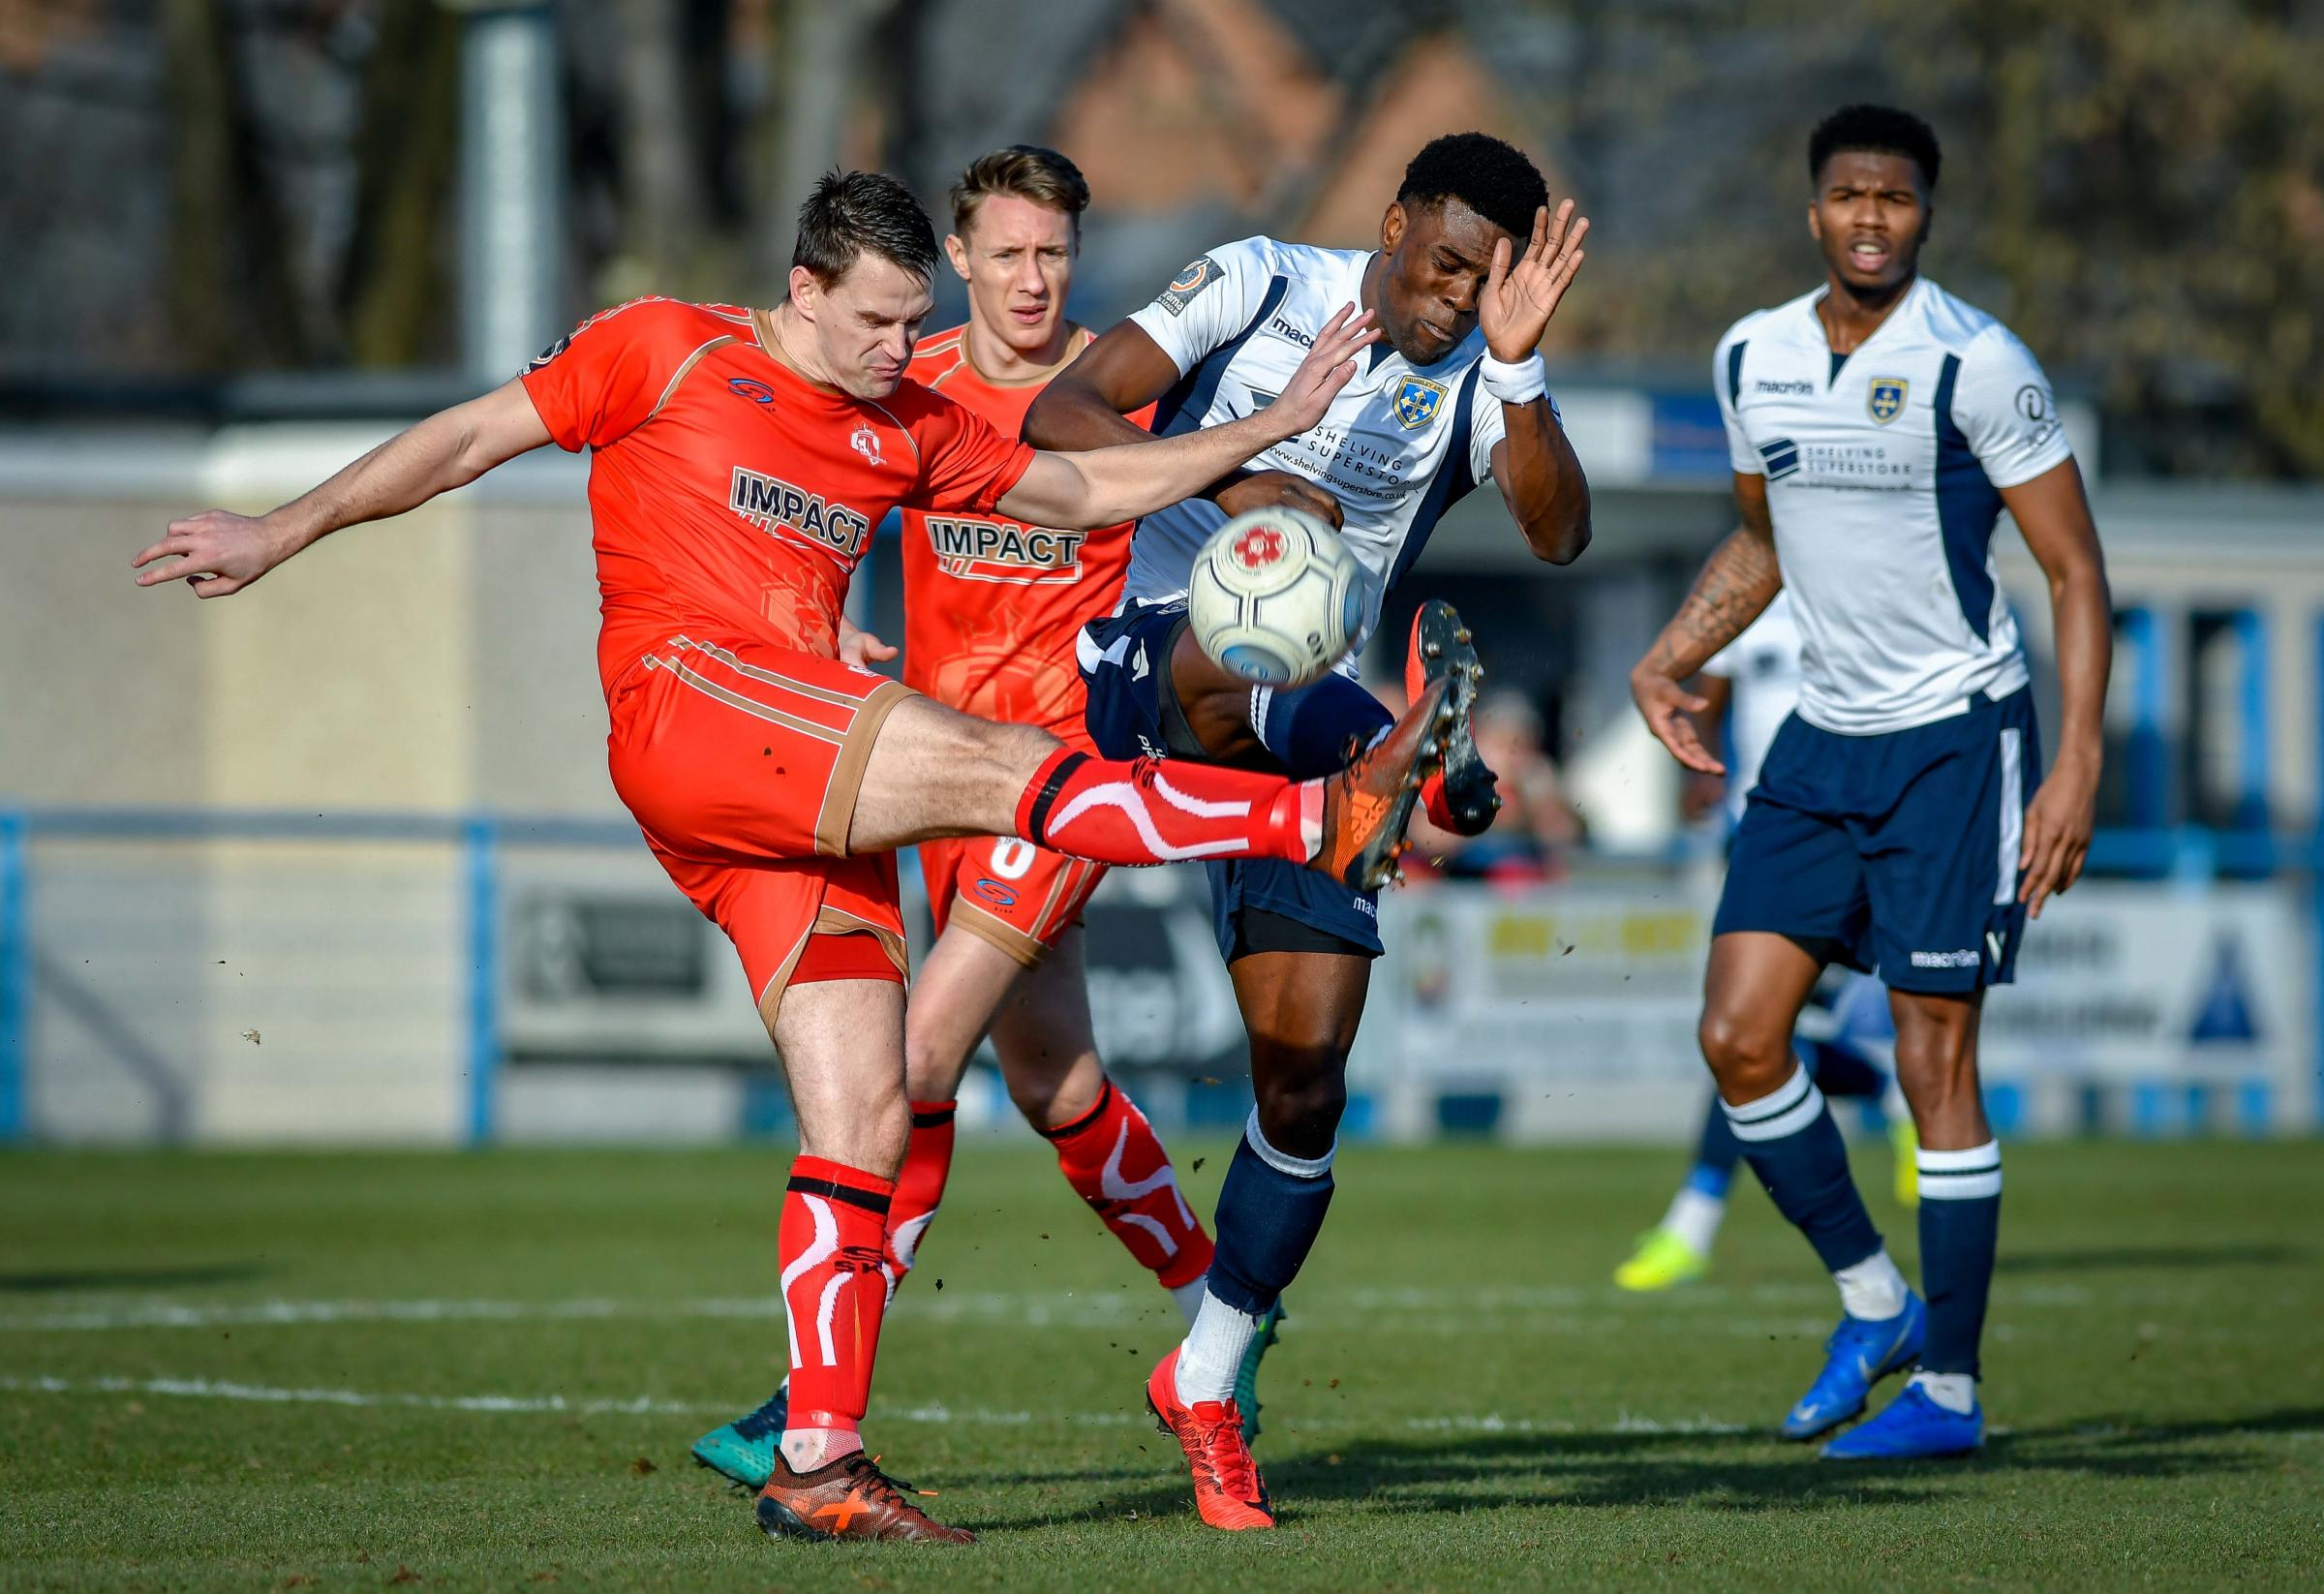 Guiseley striker Kayode Odejayi, right, battles for the ball in his side's 1-0 defeat to Alfreton Town in the Vanarama National League North on Saturday. Picture: Andy Garbutt